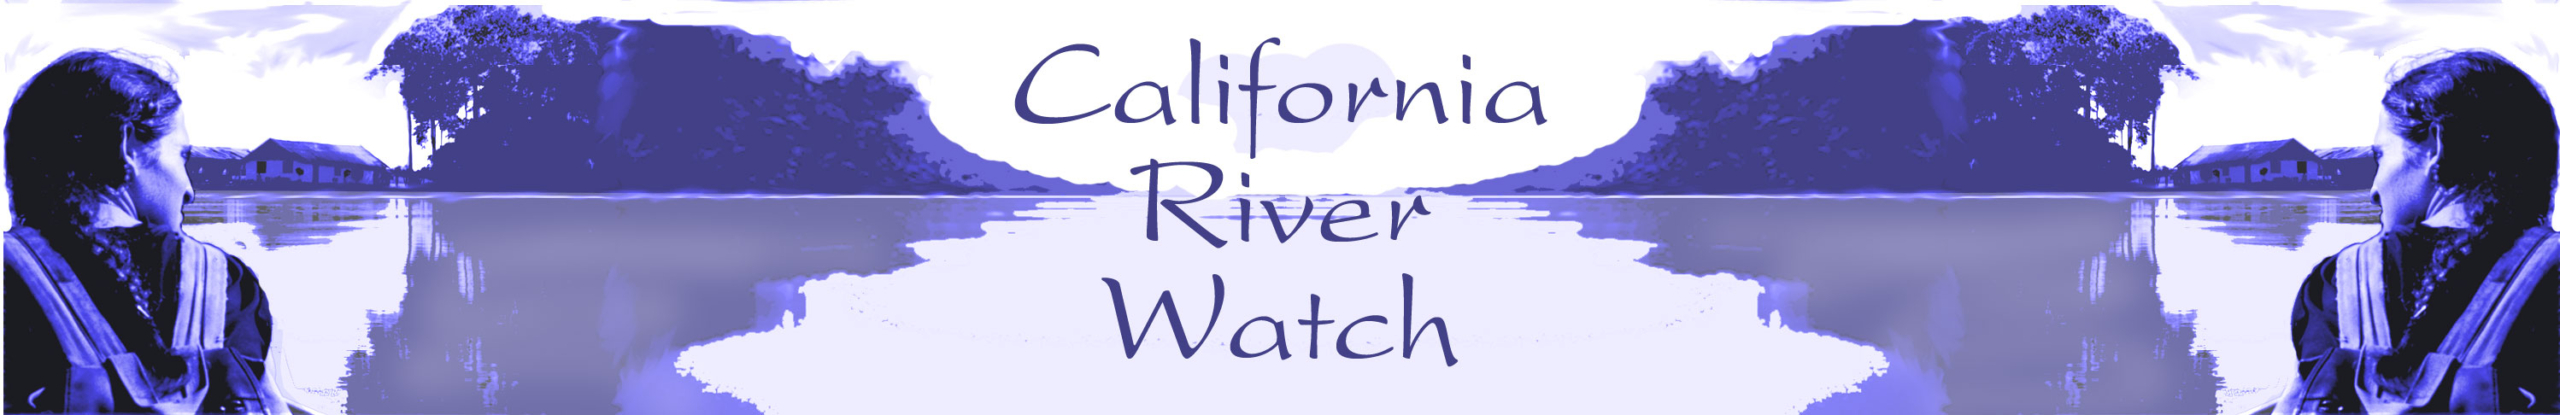 California River Watch Header